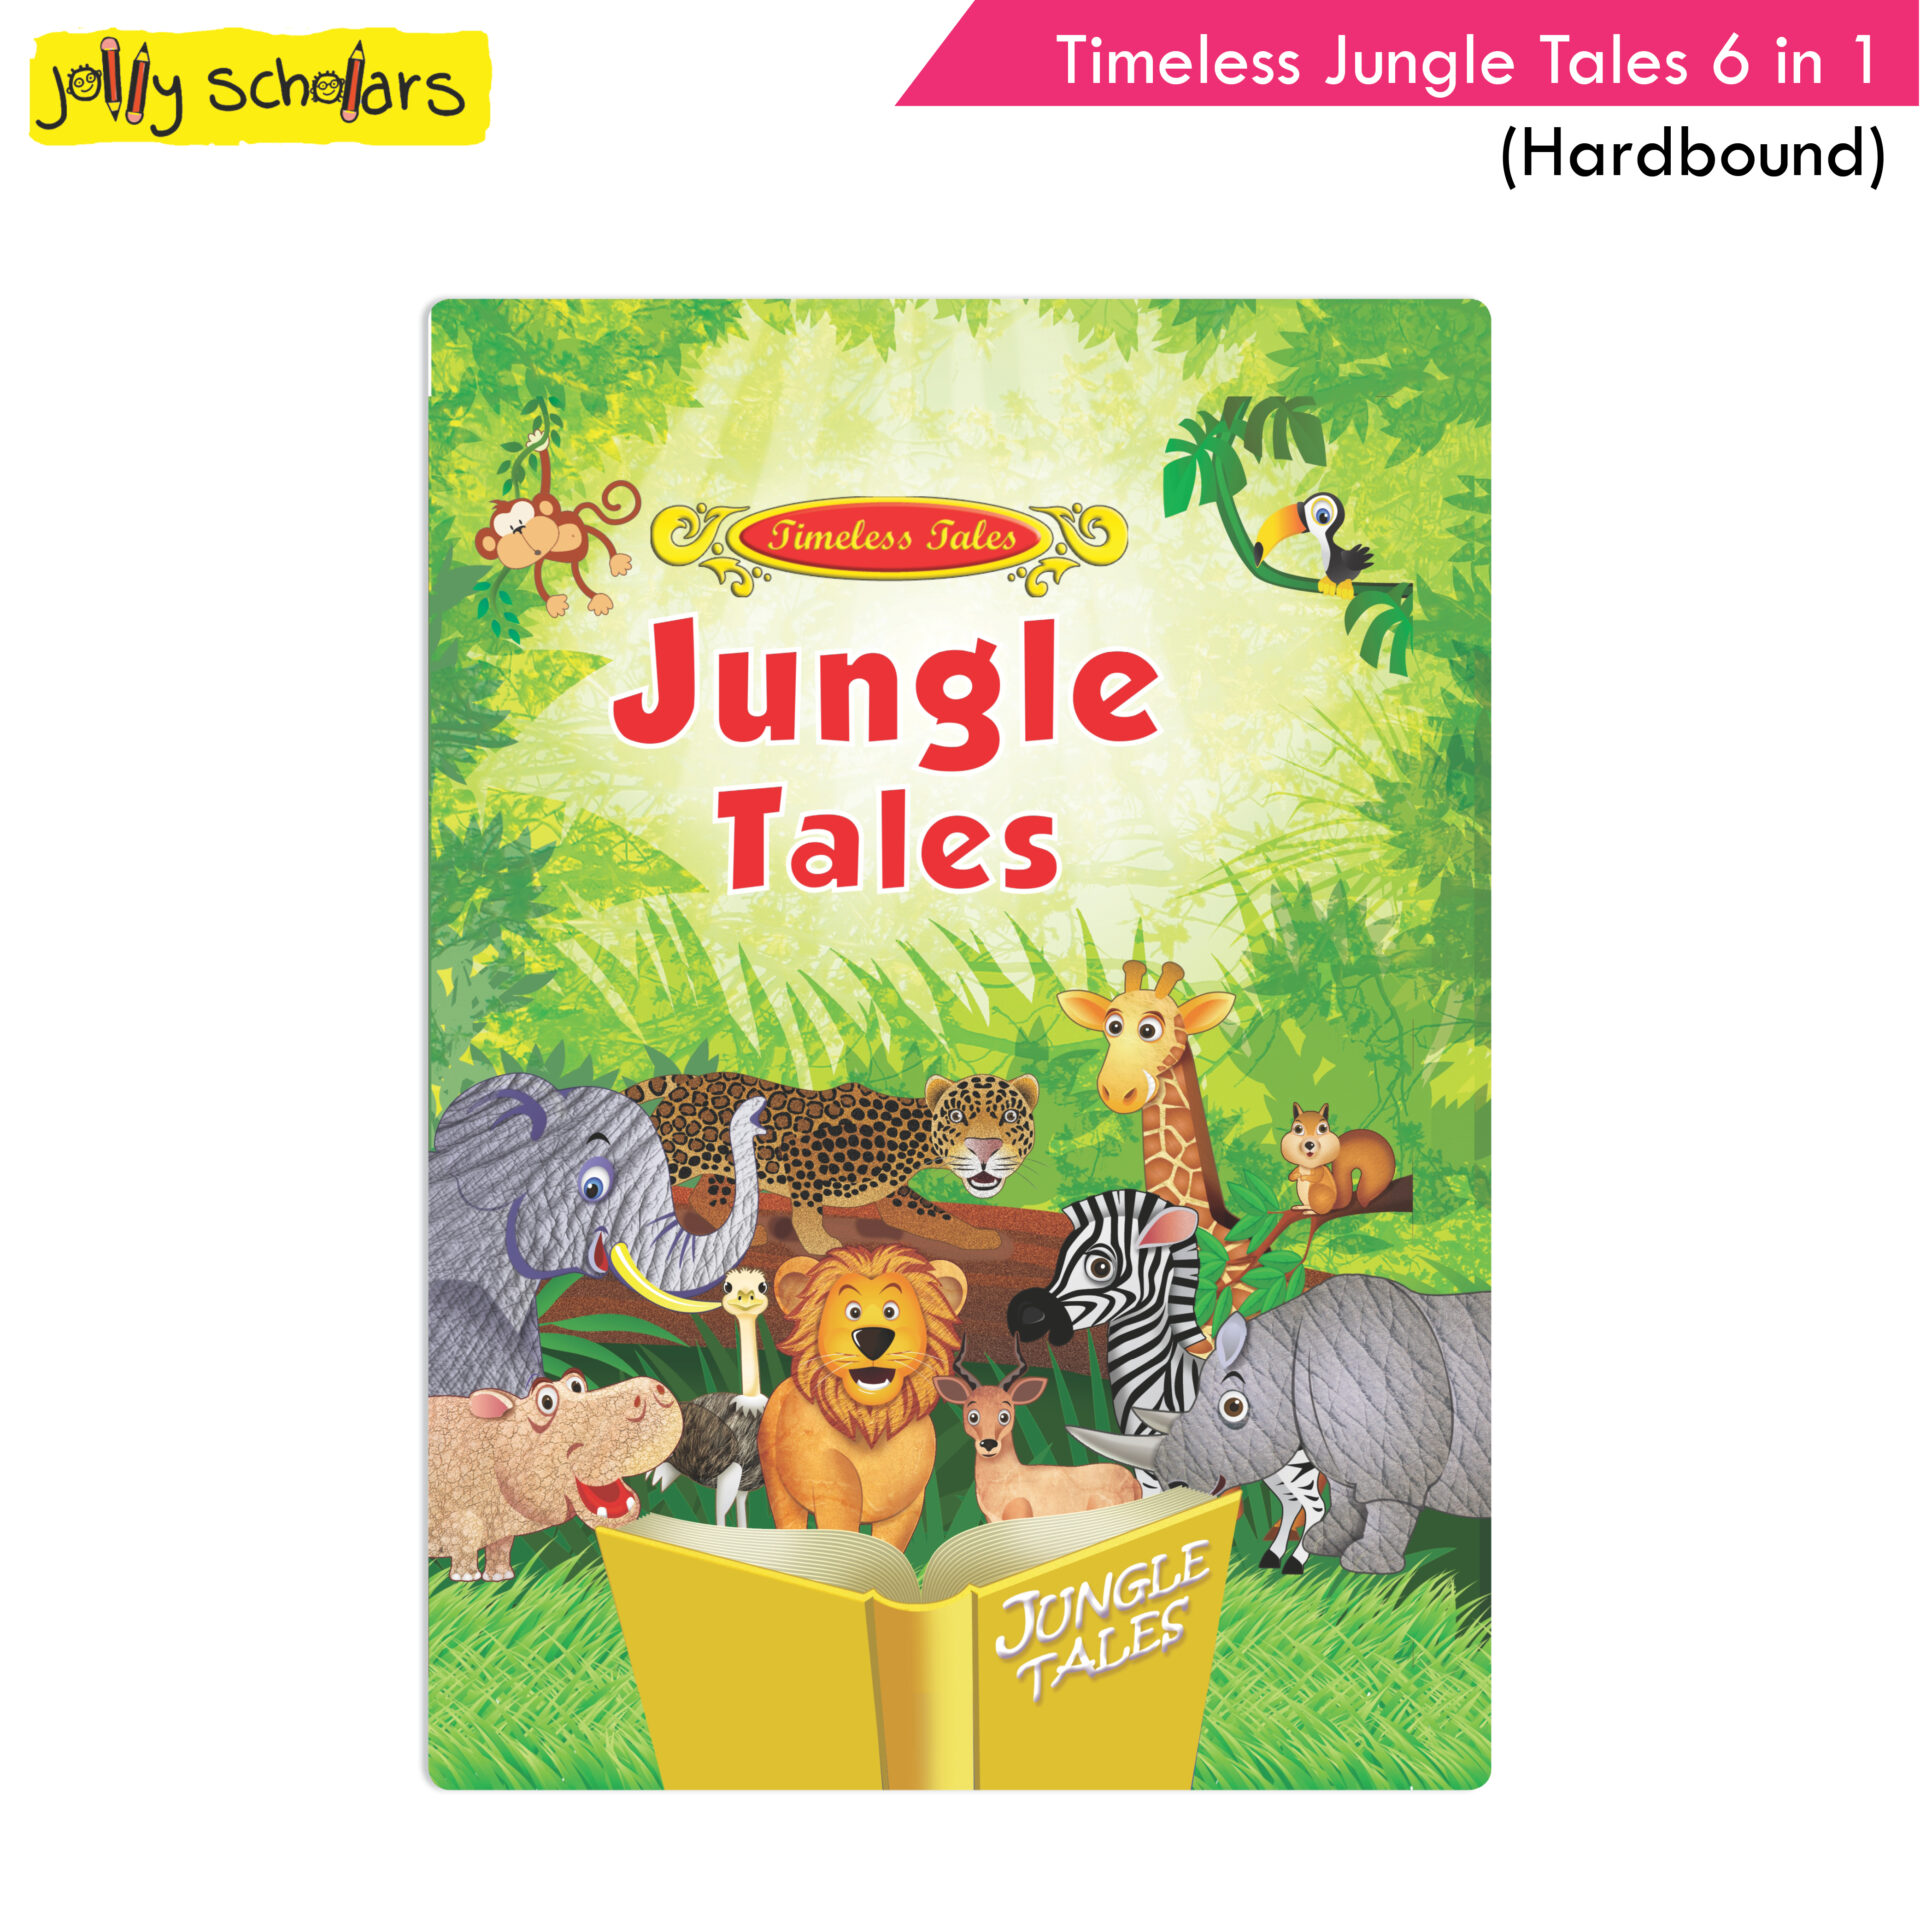 Jolly Scholars Timeless Jungle Tales 6 in 1 Hard Bound 1